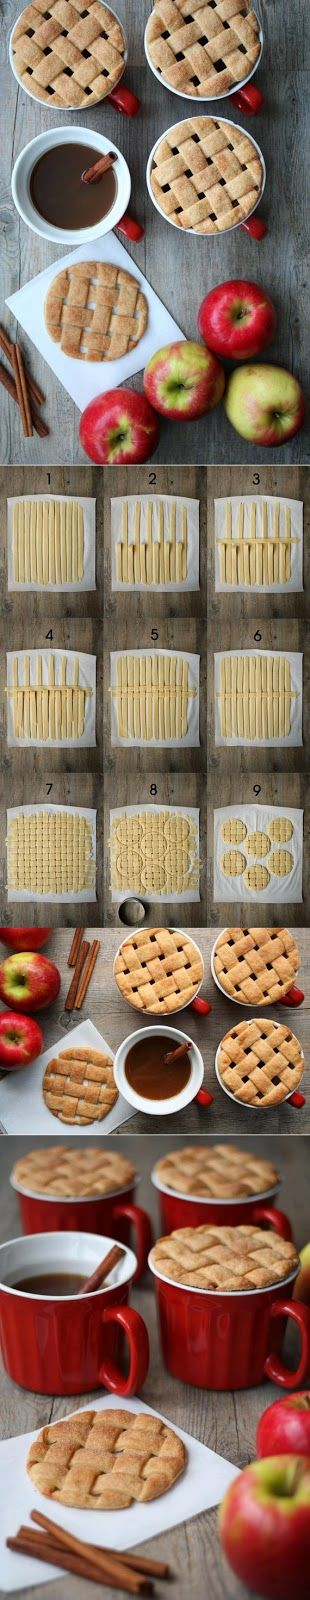 DIY Pie Mug Toppers | DIY & Crafts Tutorials